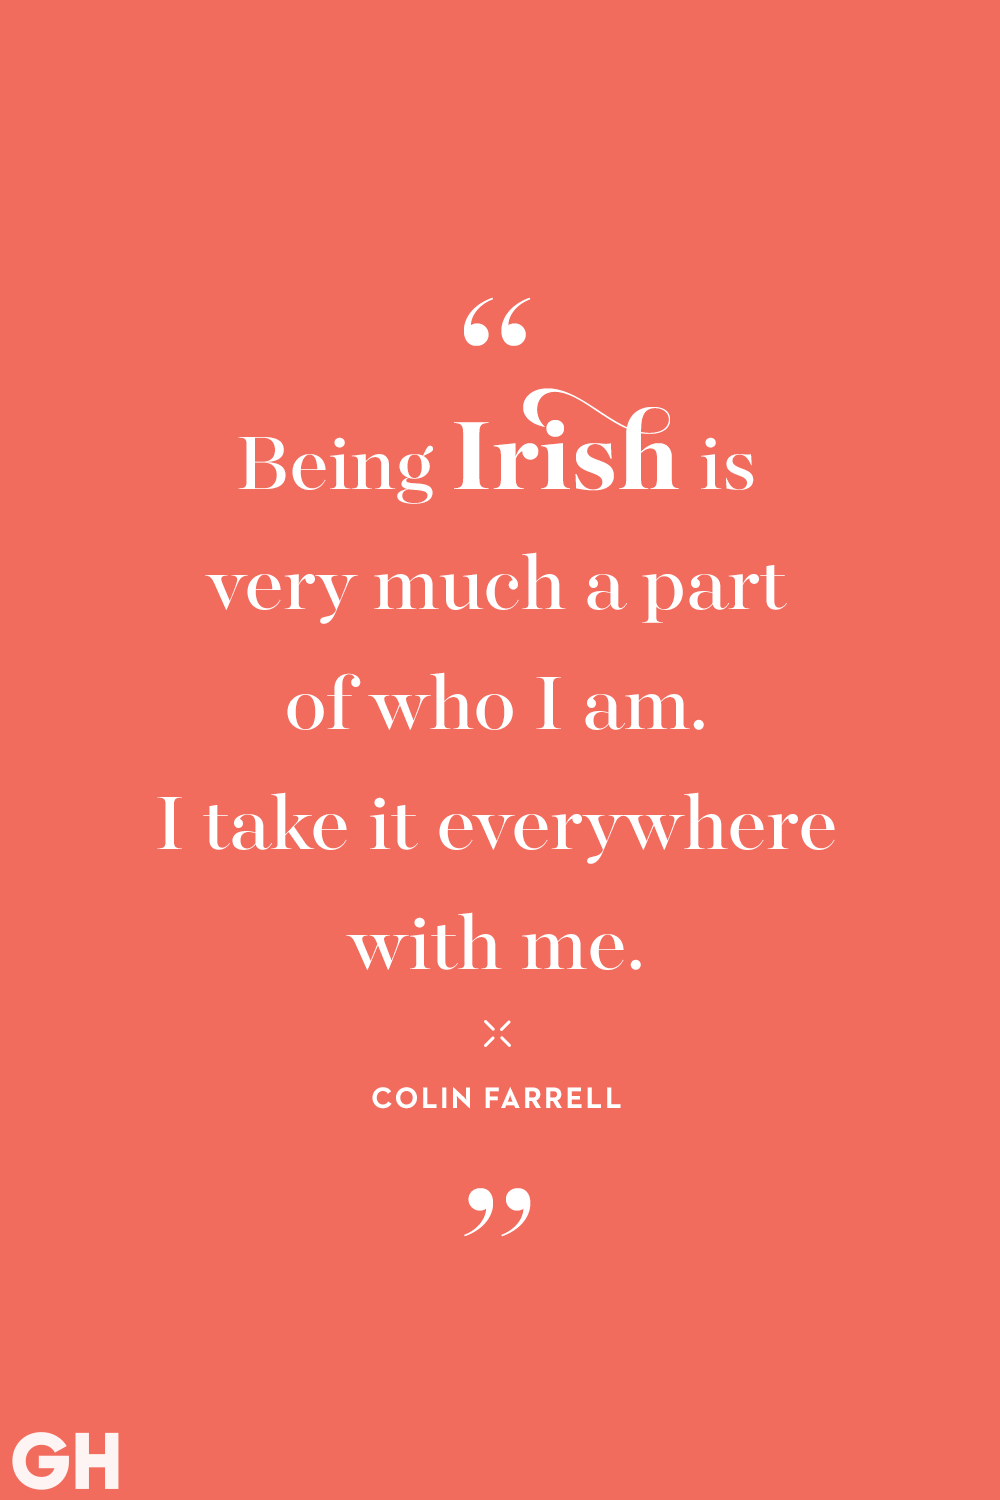 St. Patrick's Day Quote Colin Farrell